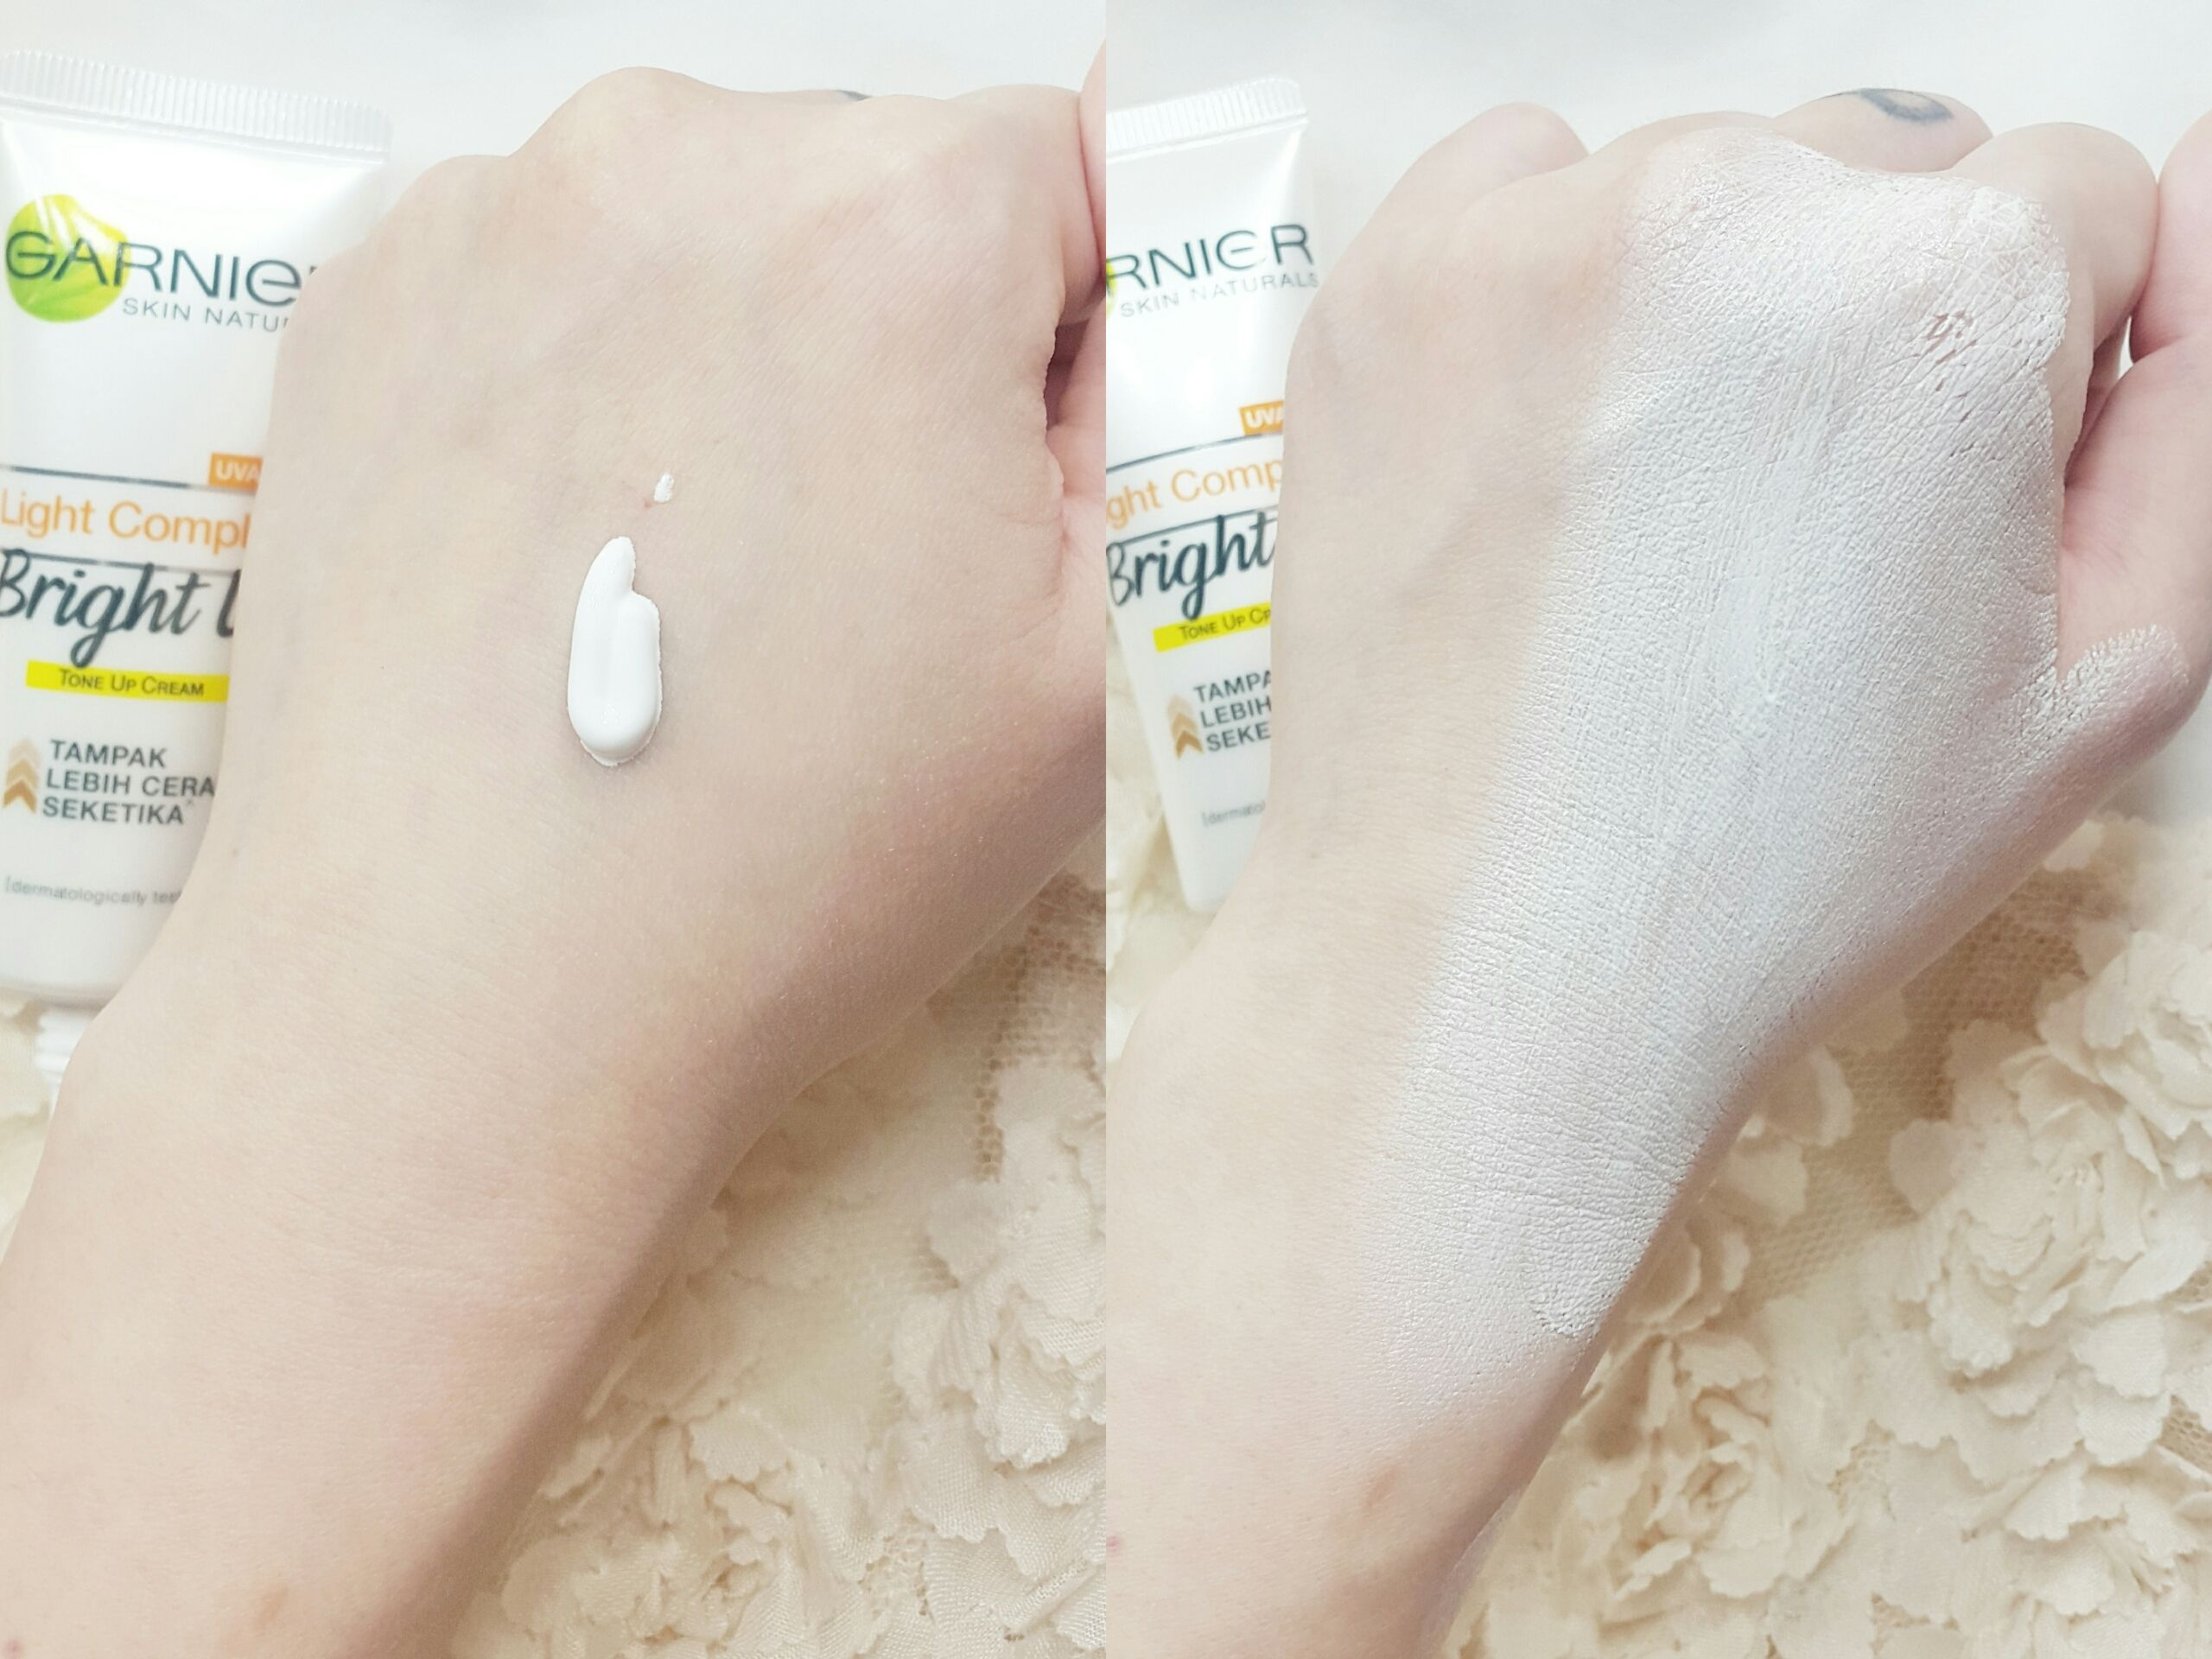 gambar review ke-3 untuk Garnier Light Complete Bright Up Tone Up Cream